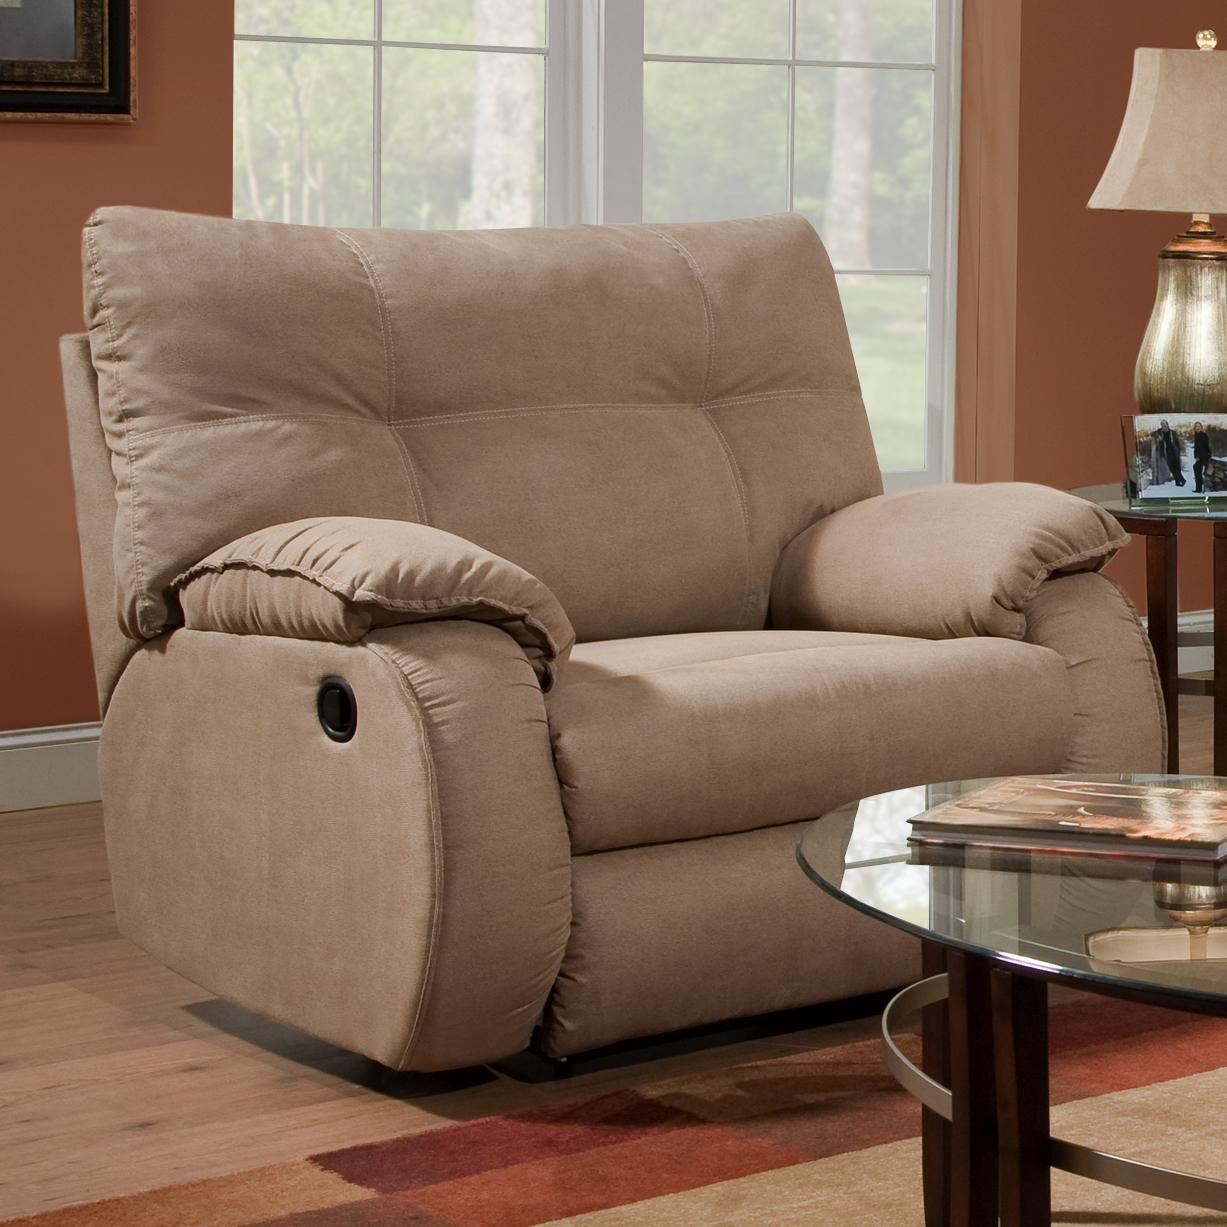 Best Dodger Plush Chair And A Half Recliner By Southern Motion 400 x 300